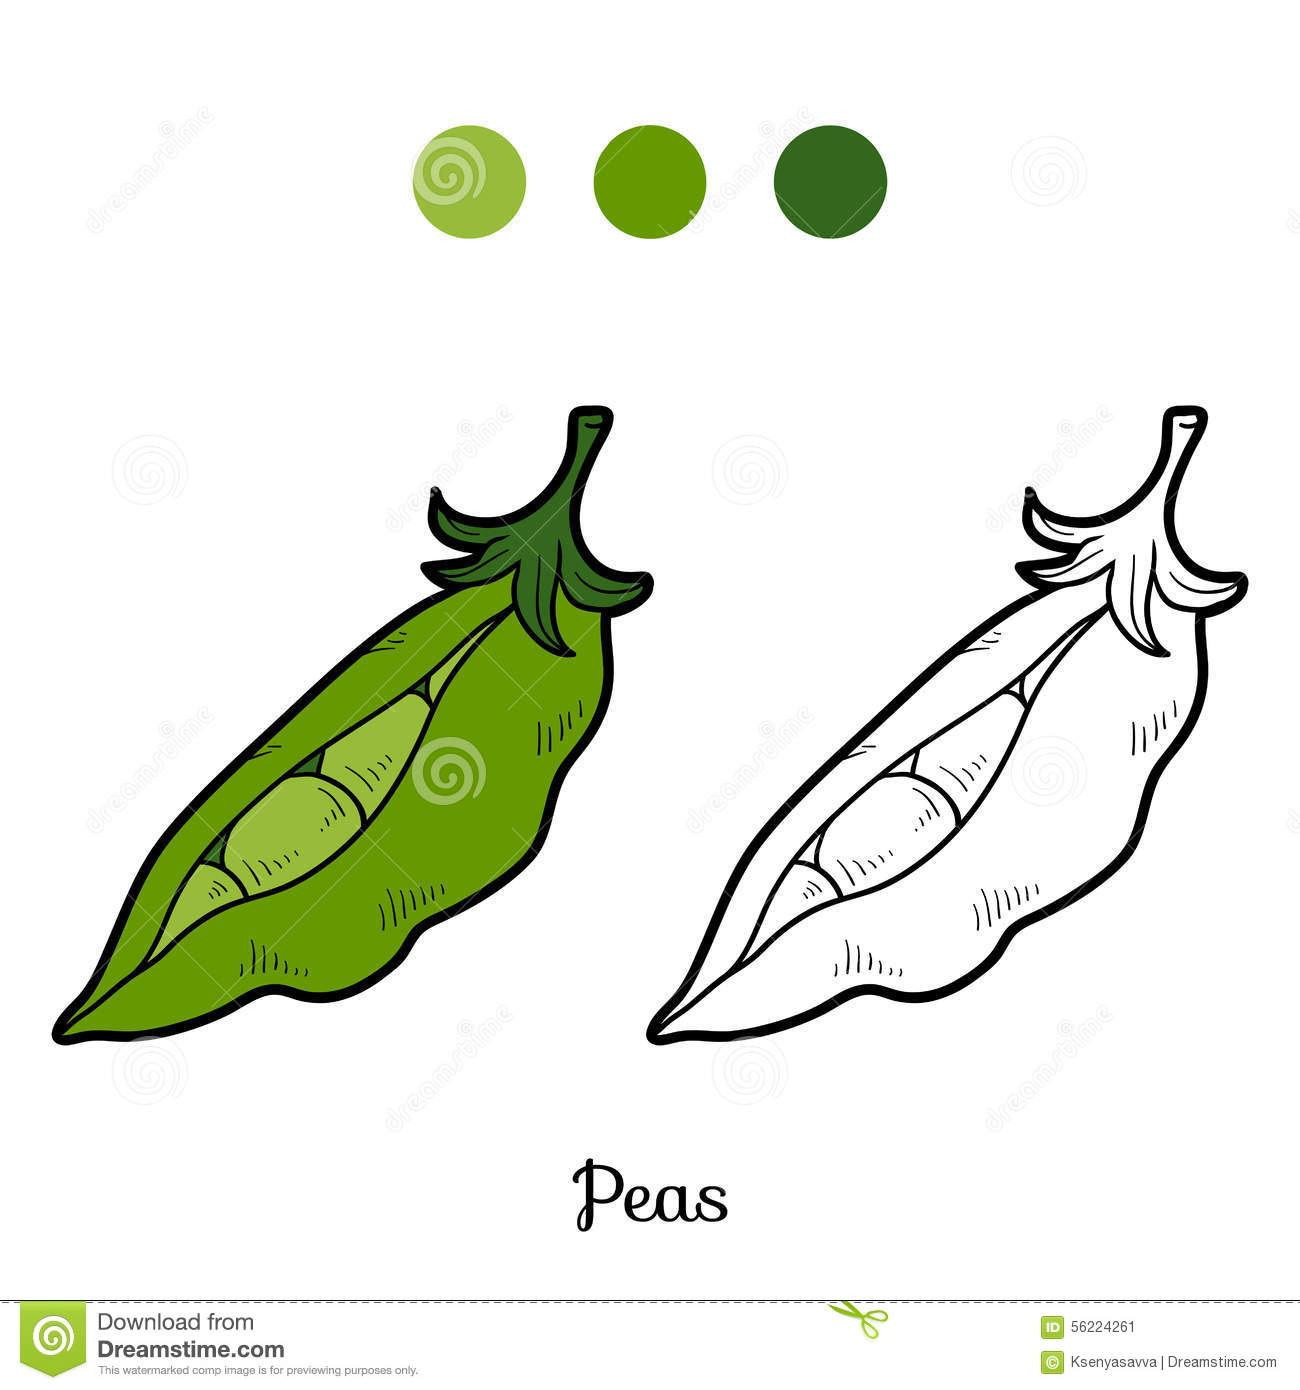 Coloring book pictures of vegetables - Coloring Book Fruits And Vegetables Peas Stock Image